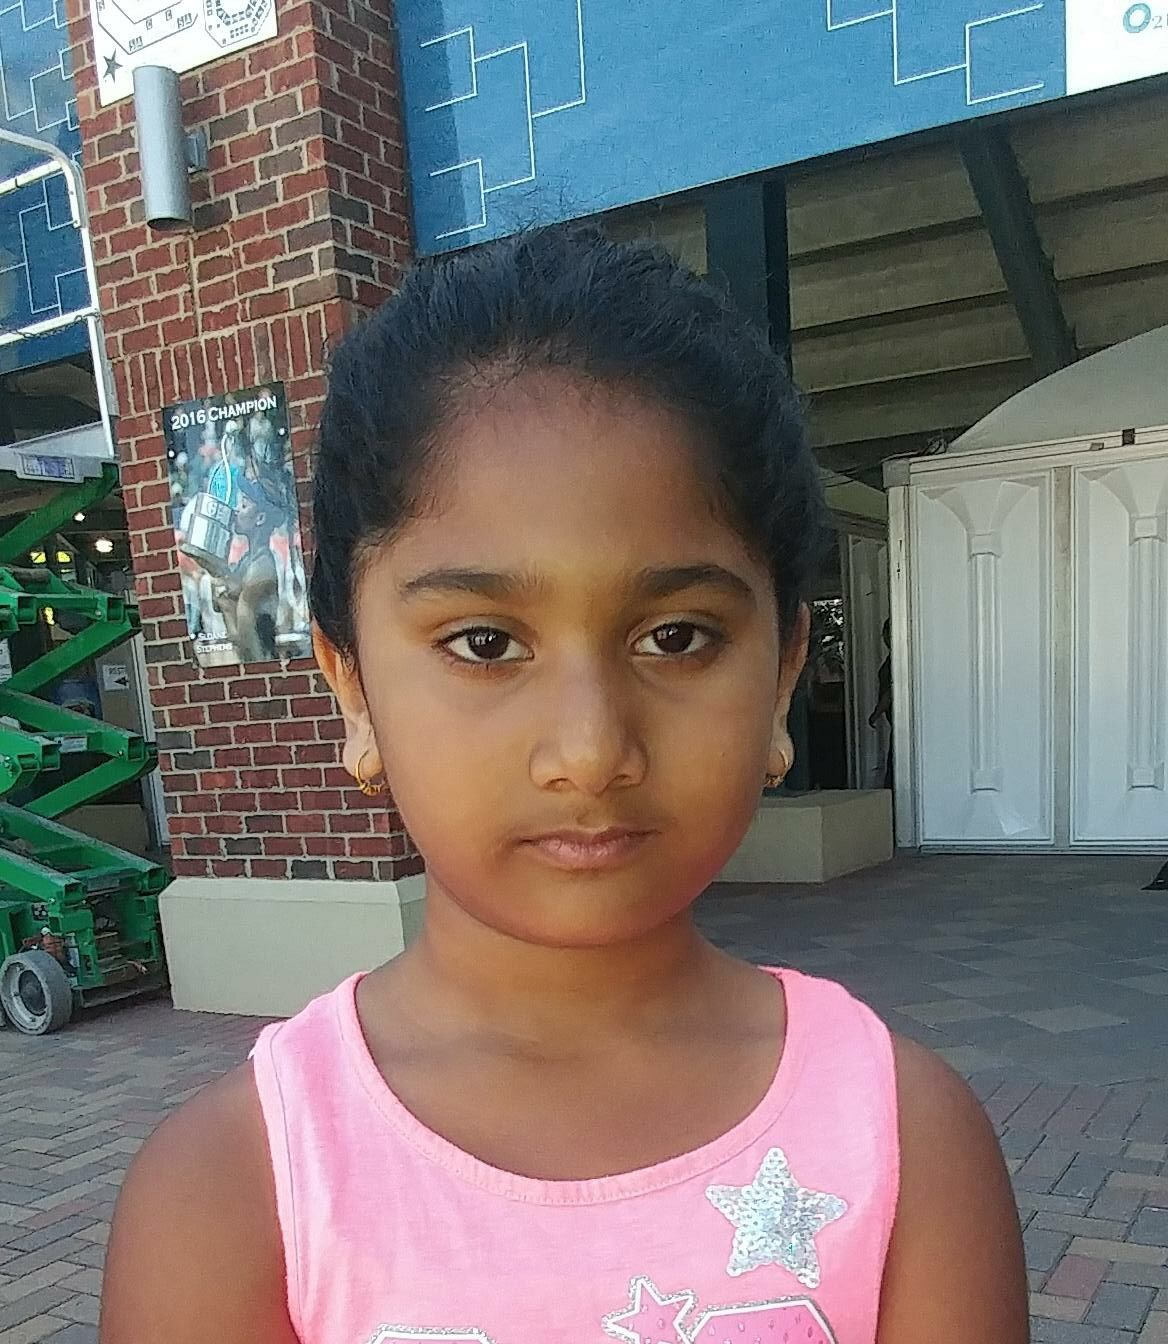 How much practice did it take for you to get to this level?  Dedeepya  Age 6